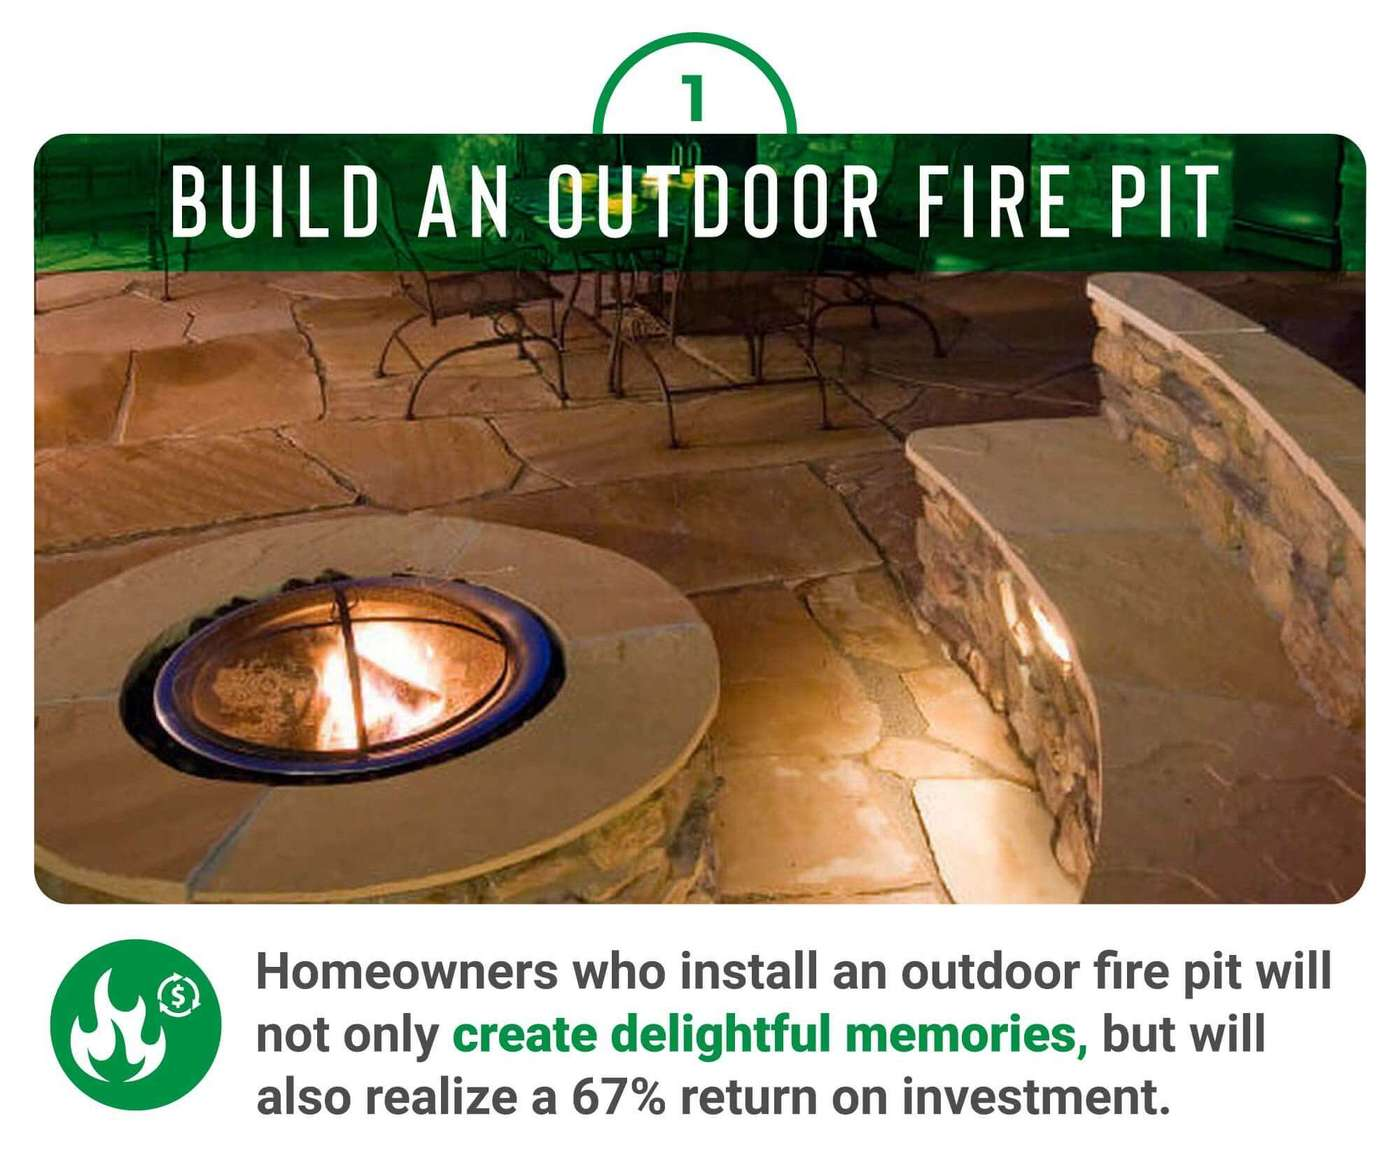 Build an outdoor fire pit